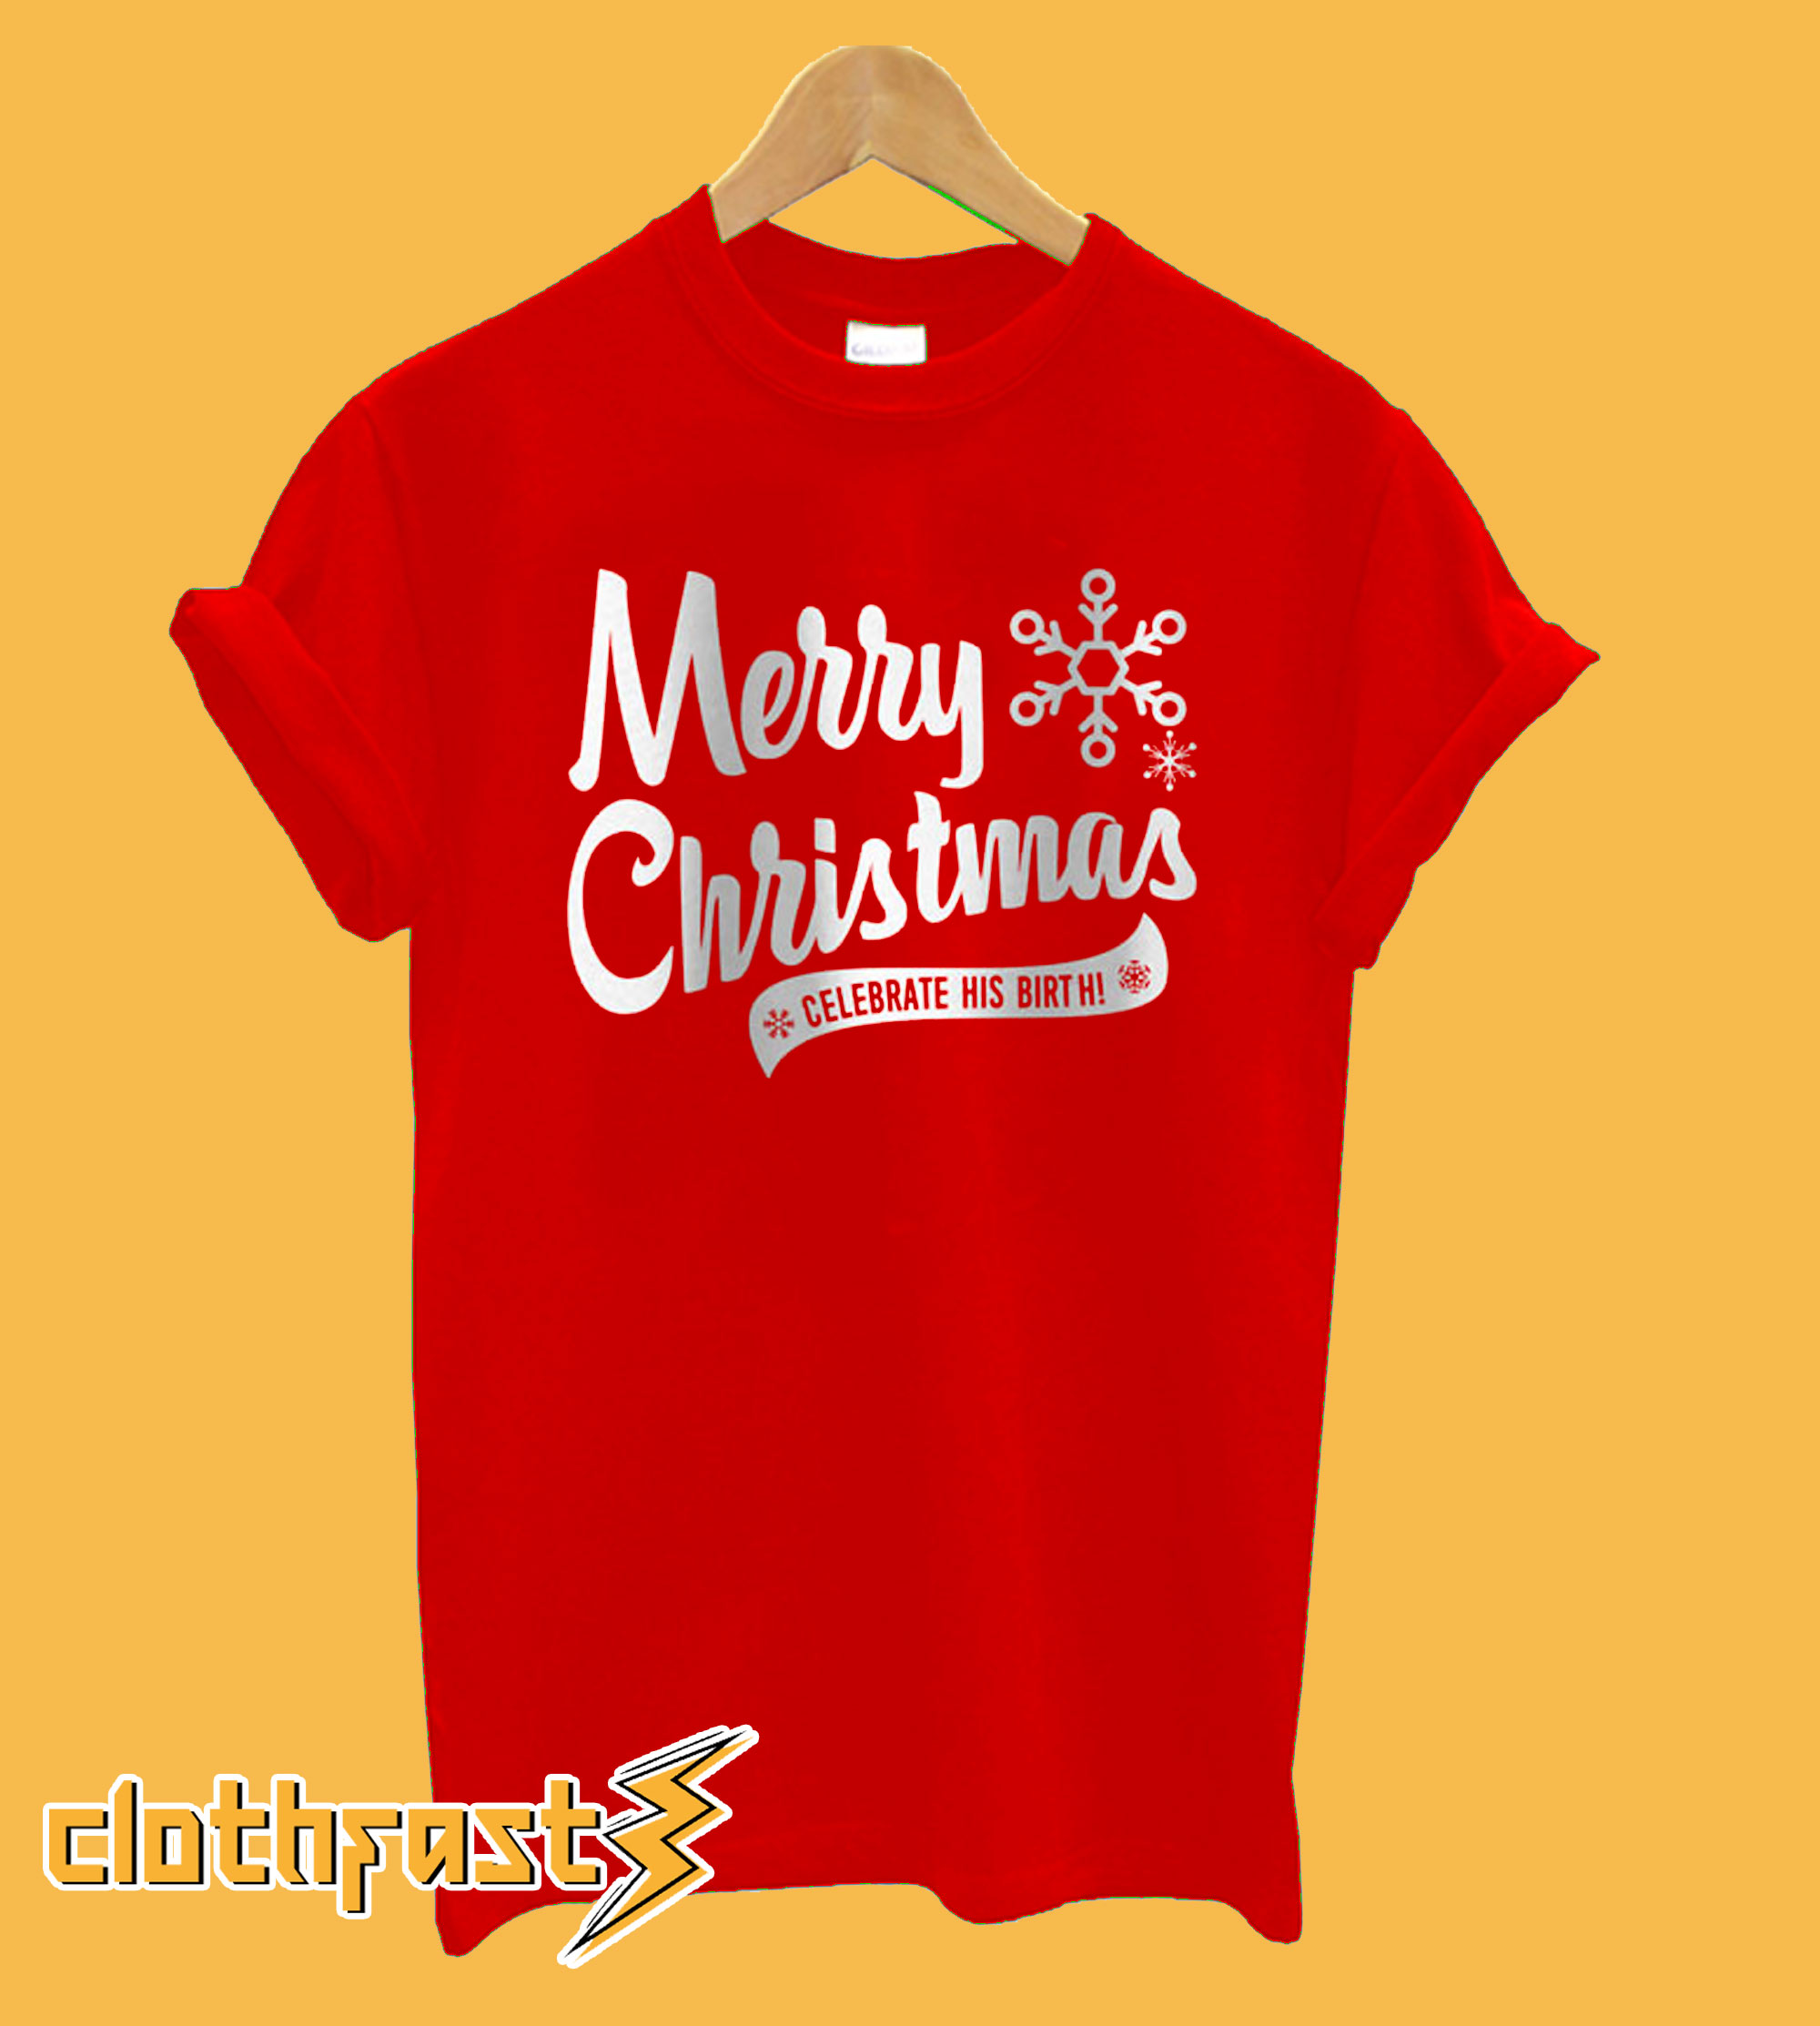 Merry Christmas Celebrate His Birth T-Shirt